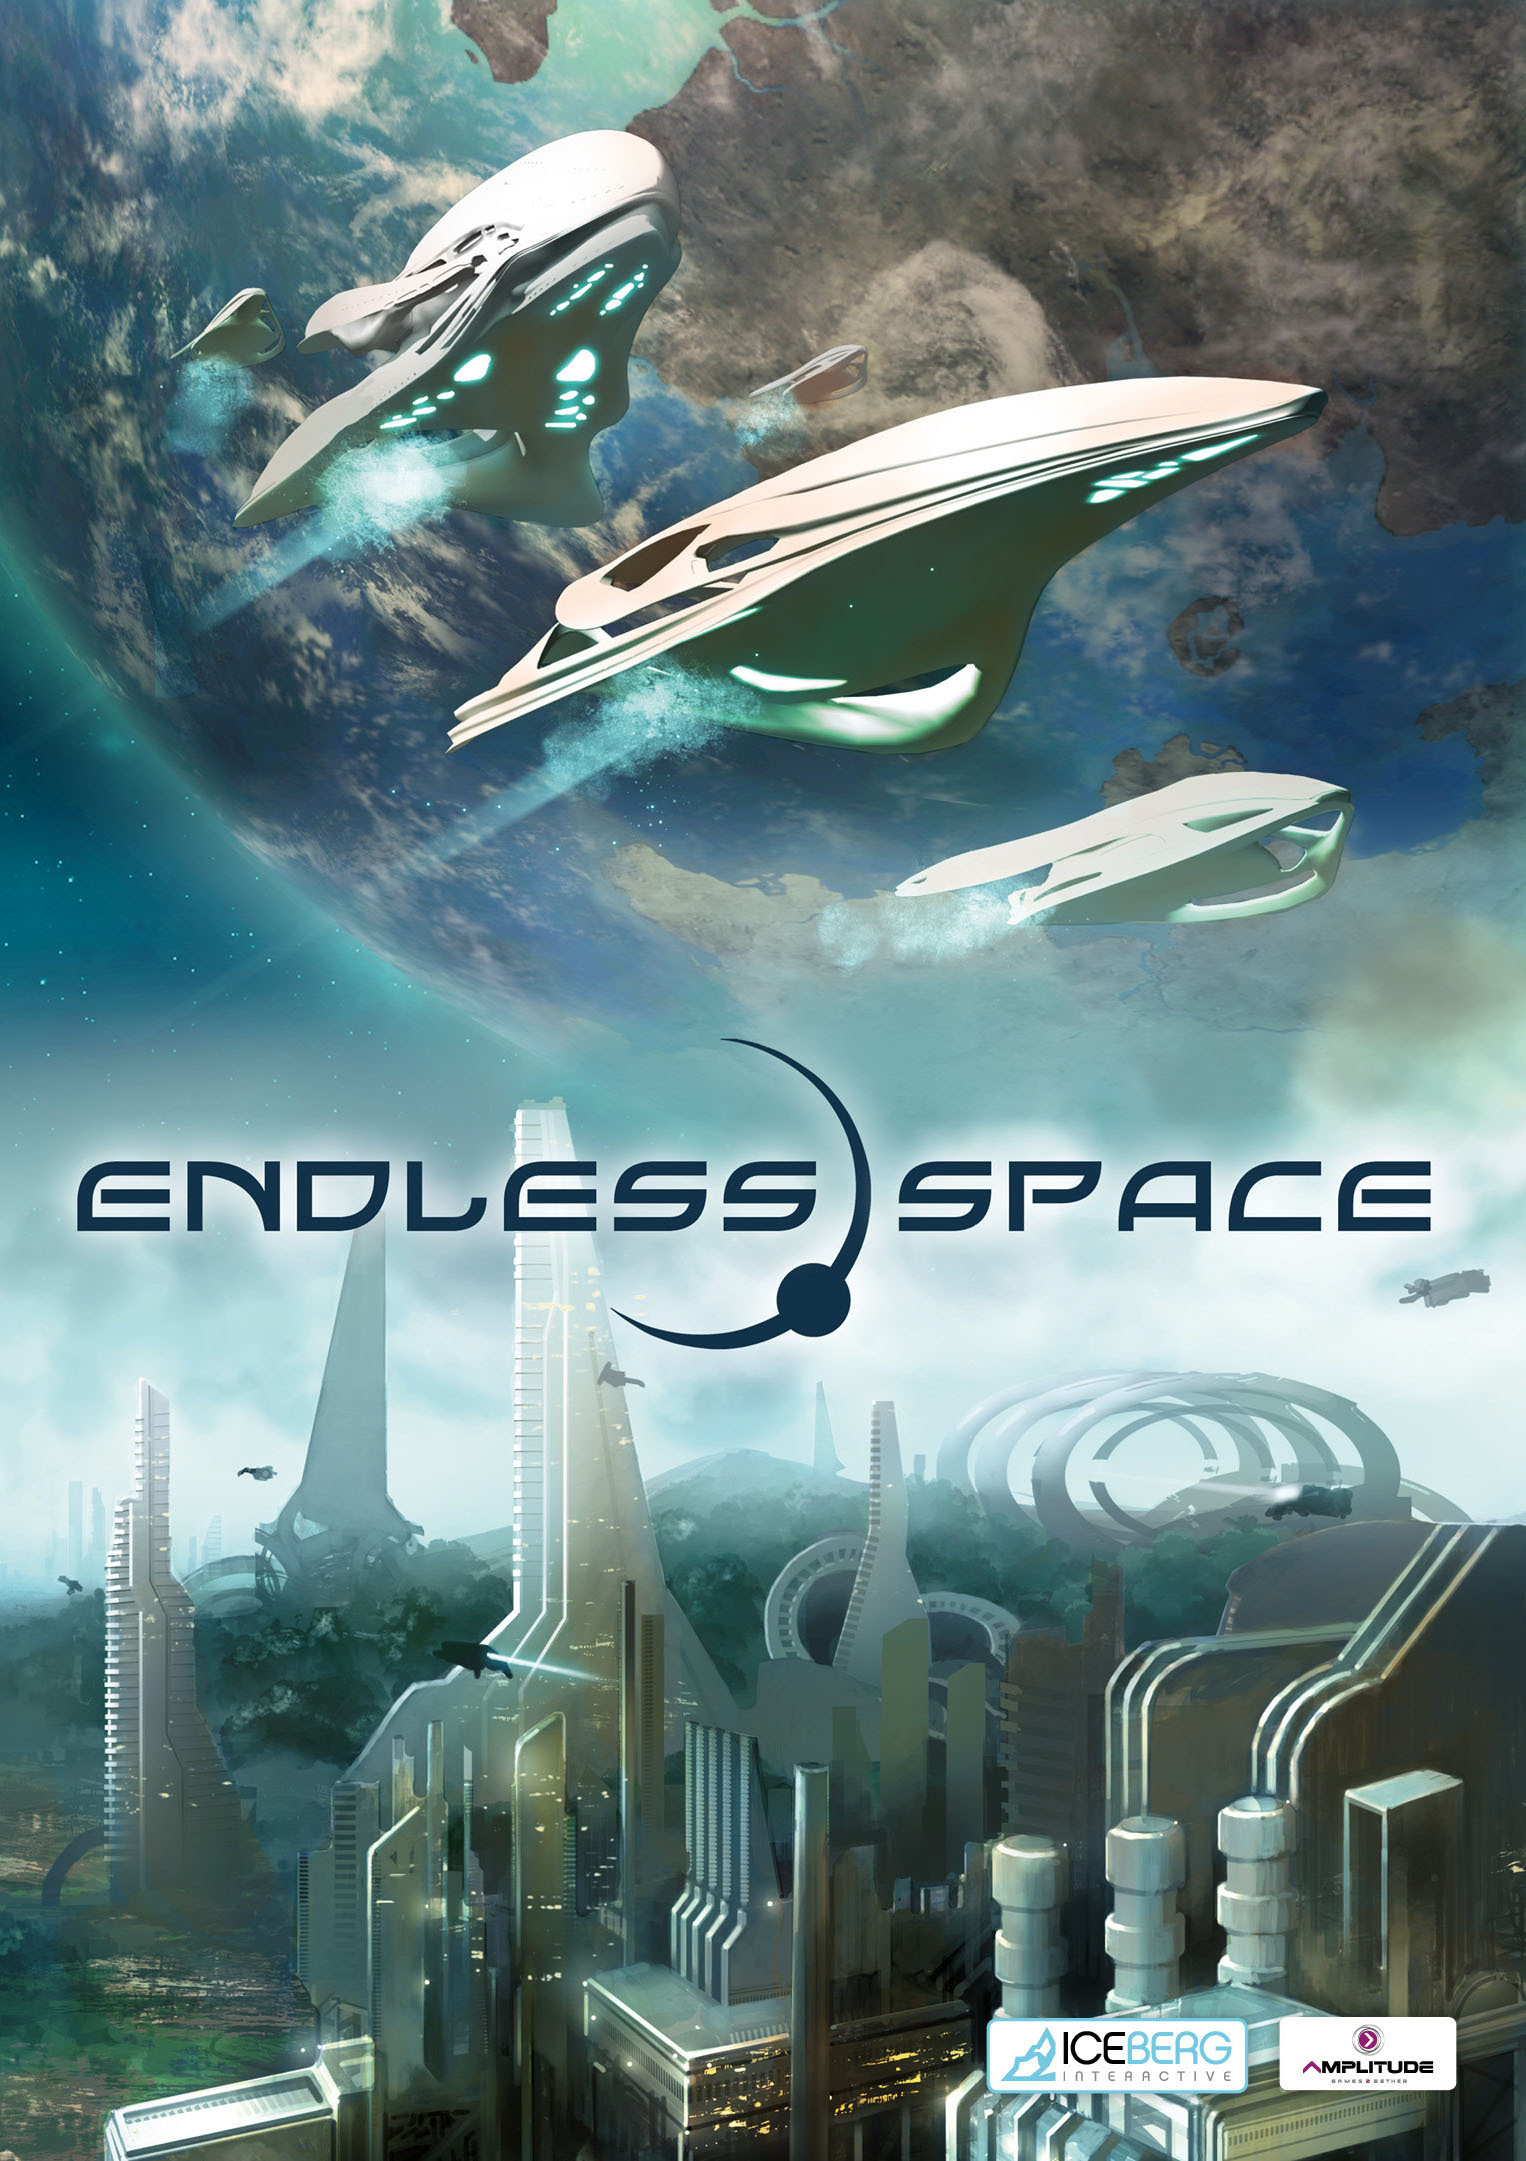 http://static.tvtropes.org/pmwiki/pub/images/endless_space_box_art.jpg